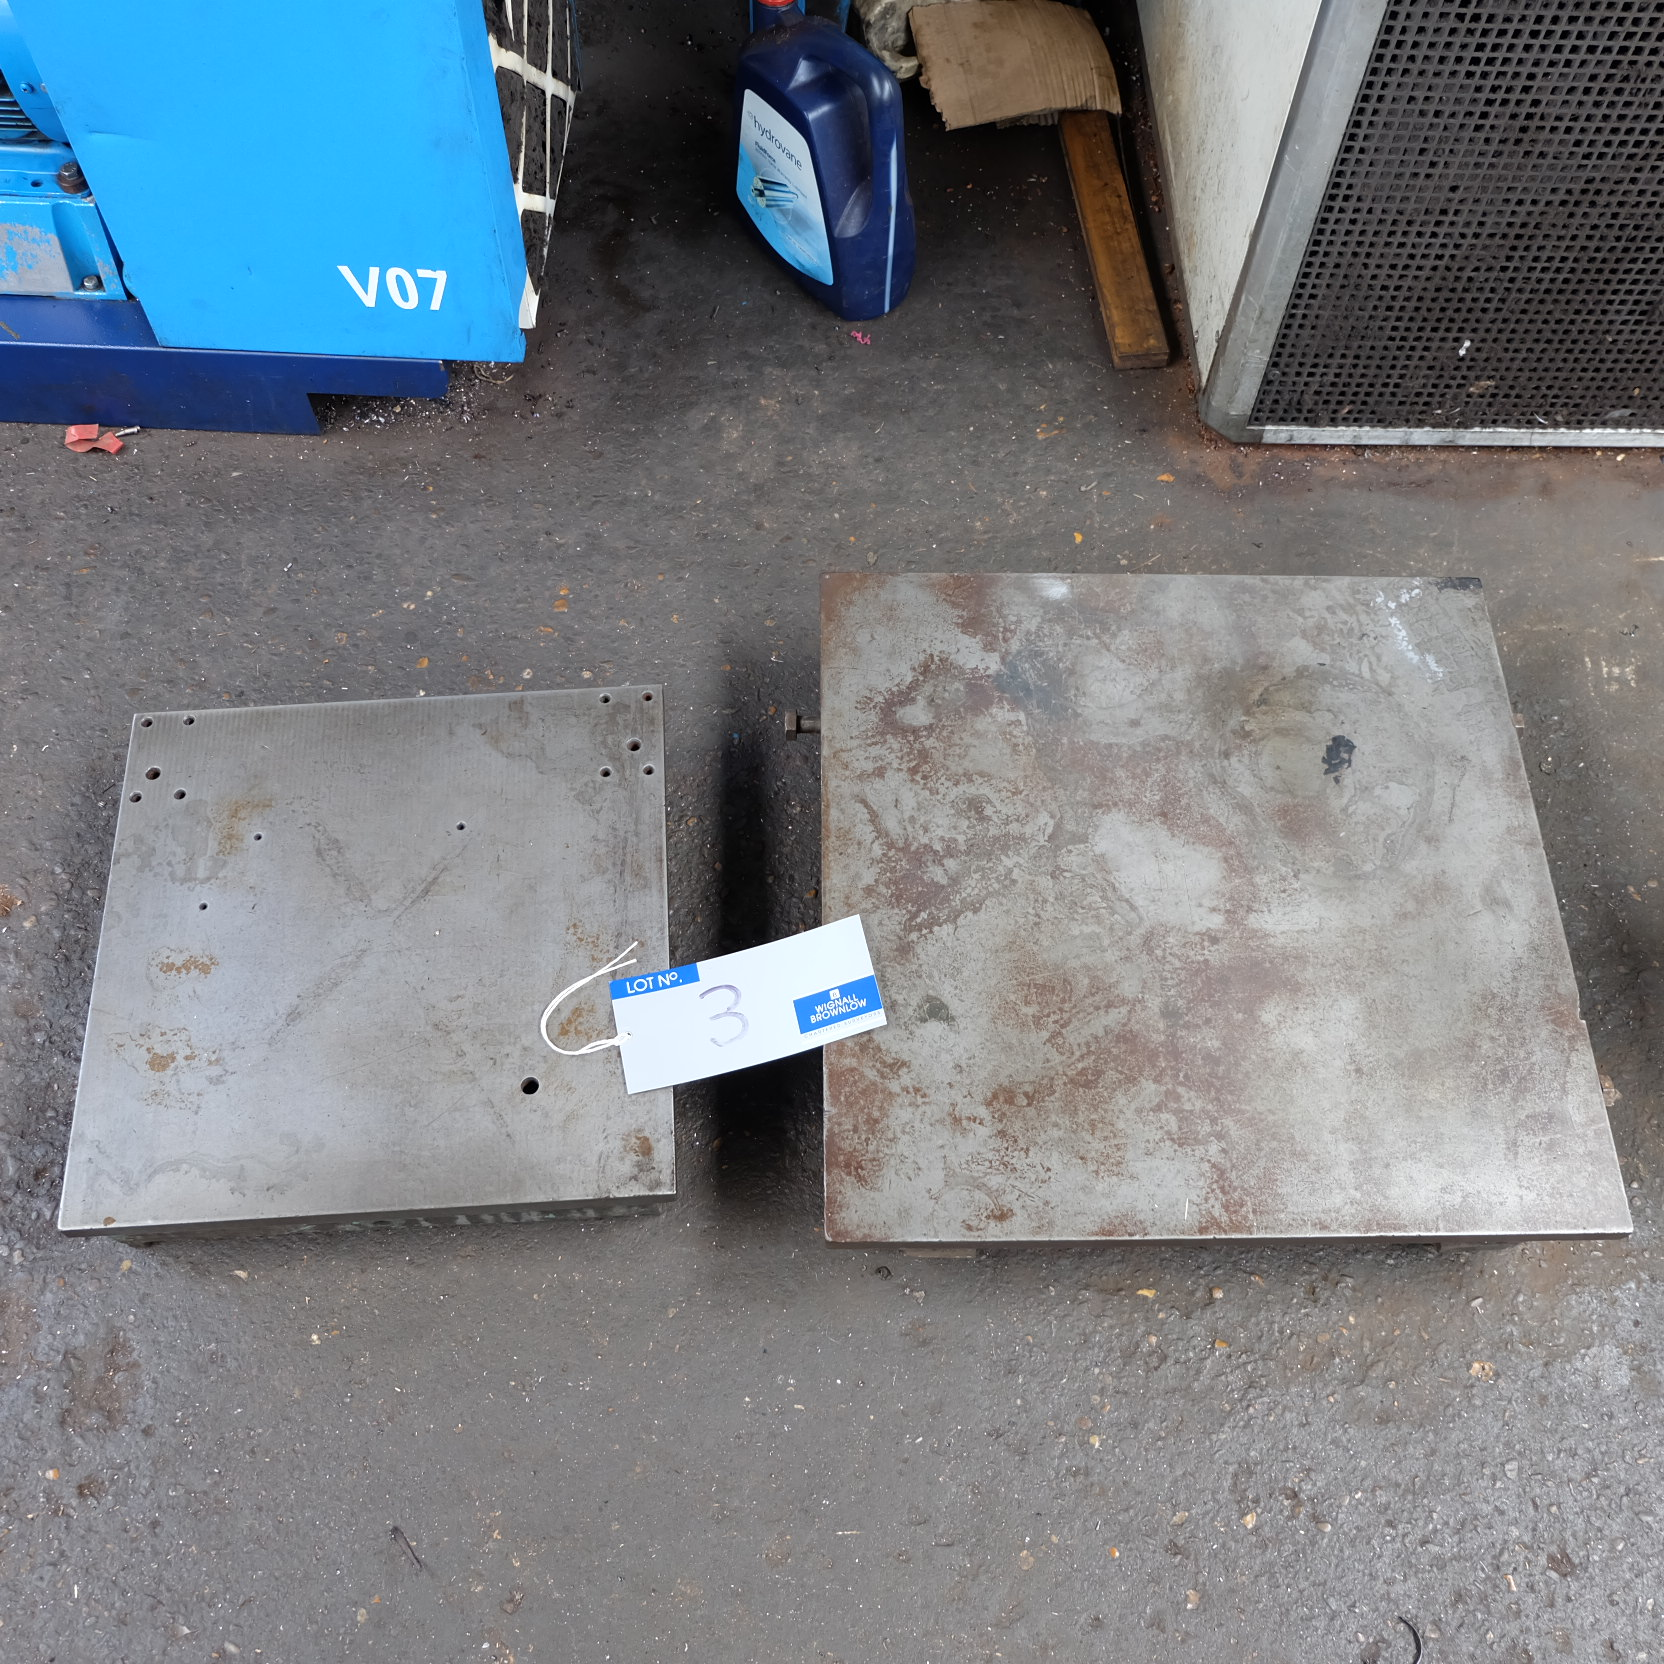 Lot 3 - 2 Cast Iron Surface Plates: 24in x 24in, 18in x 18in.